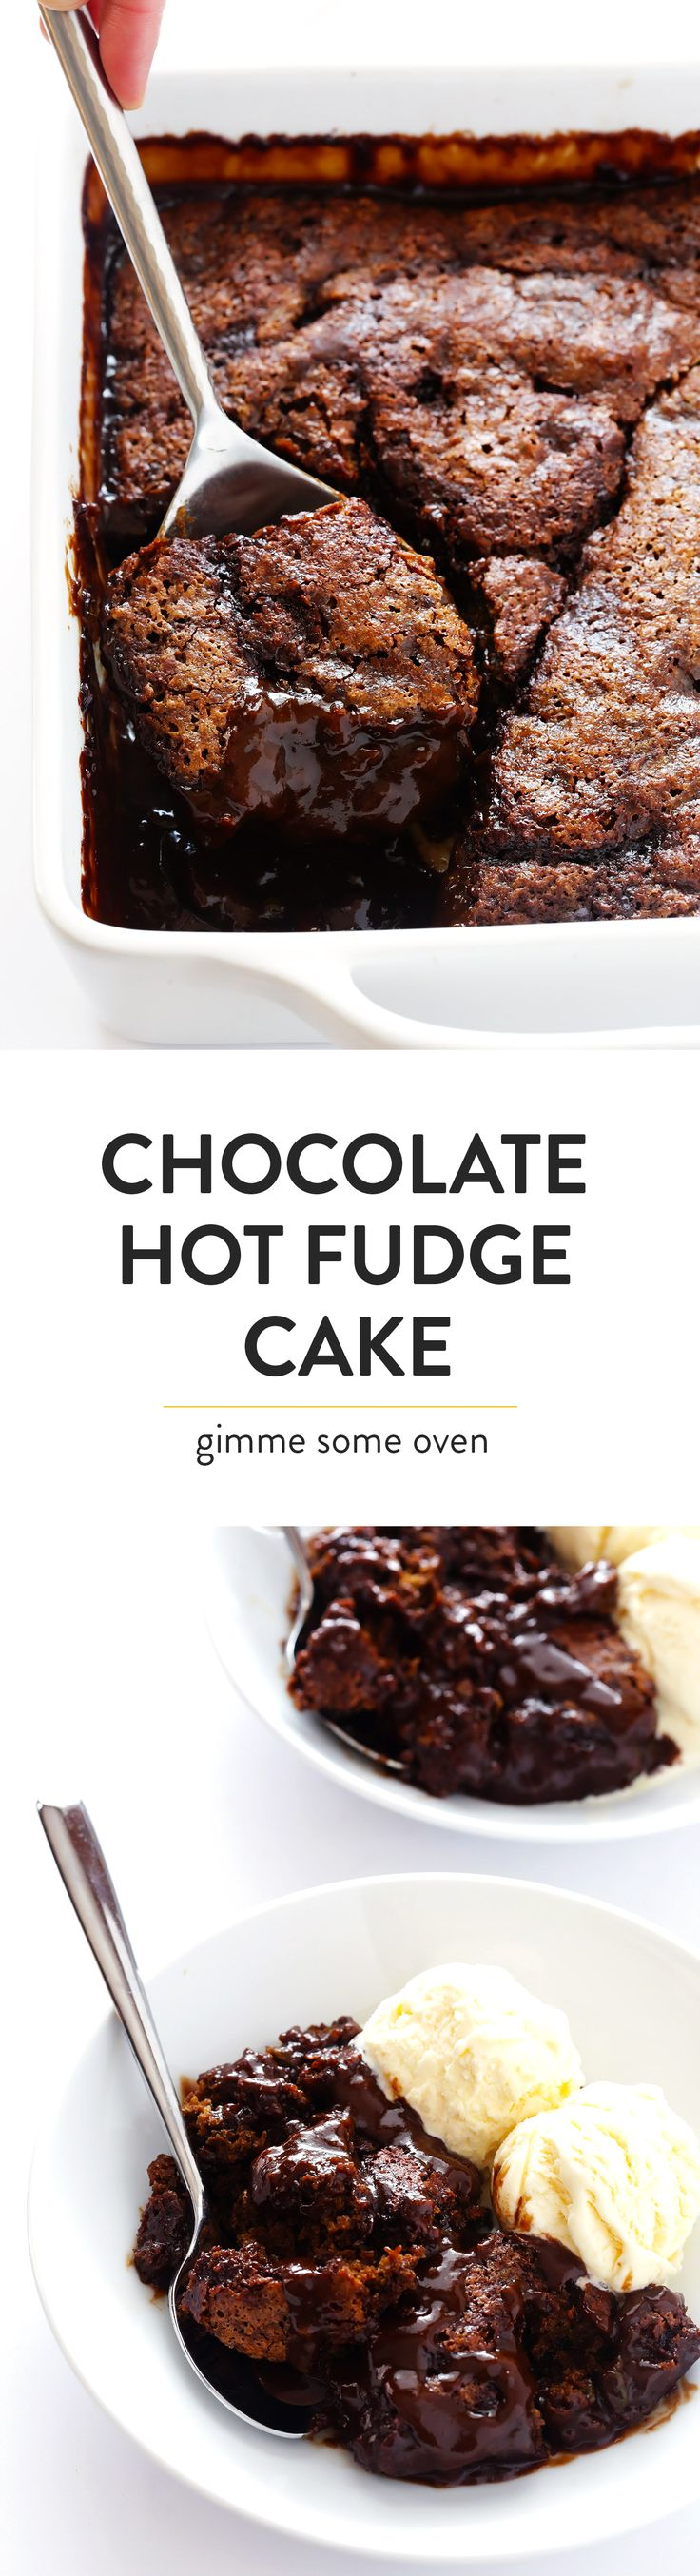 This AMAZING Chocolate Avocado Hot Fudge Cake is super easy to make, and bakes up with a rich chocolate cake on top and a gooey hot fudge sauce on the bottom.  One of my favorite desserts! | gimmesomeoven.com